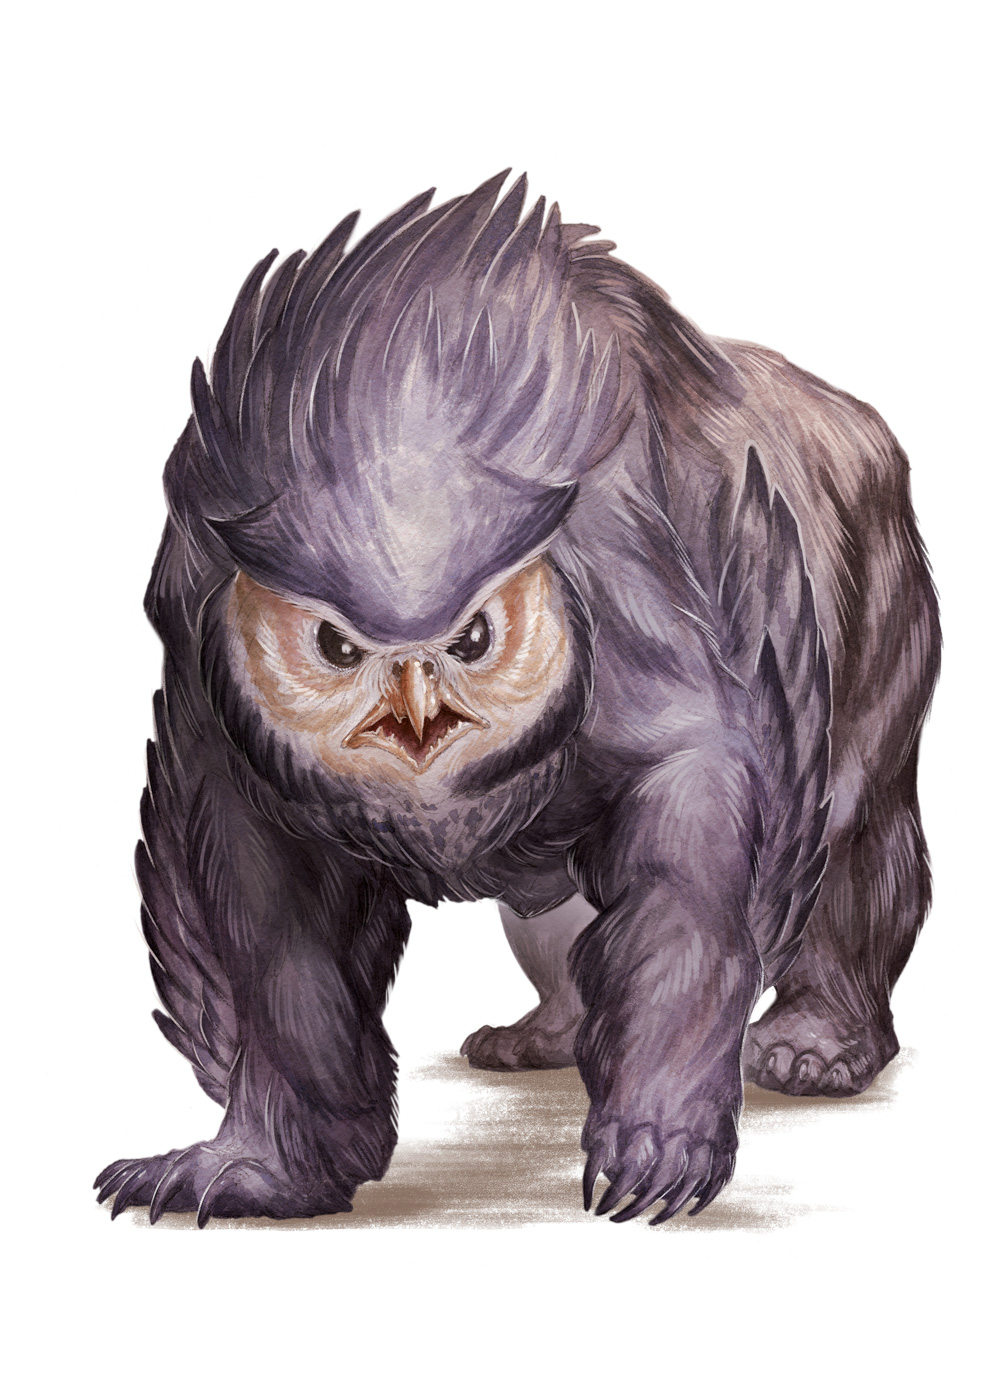 Monster_Manual_5e_-_Owlbear_-_p249.jpg